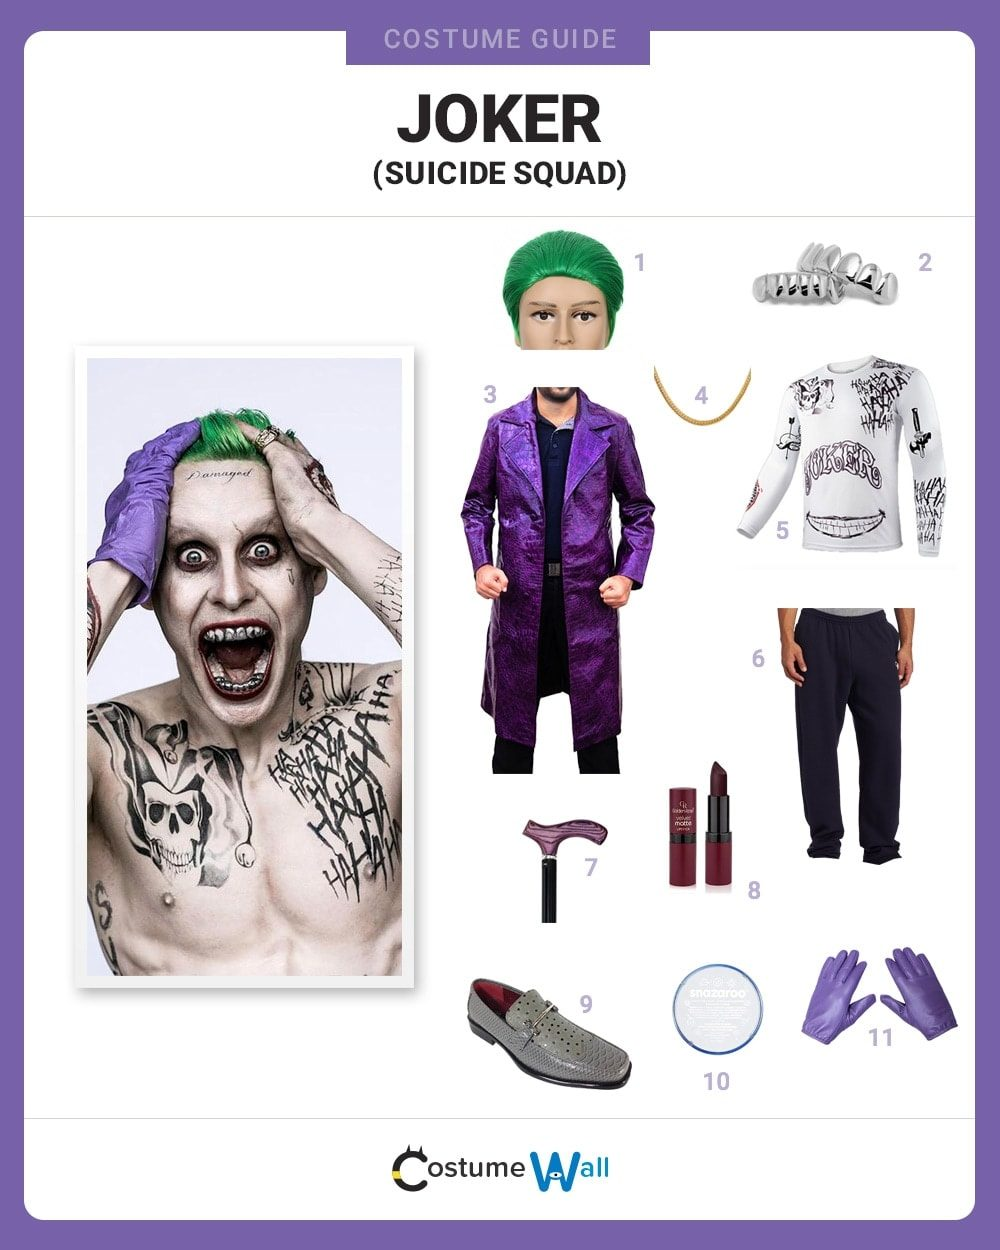 Suicide Squad Joker Halloween Costume.Dress Like Joker Suicide Squad Costume Halloween And Cosplay Guides